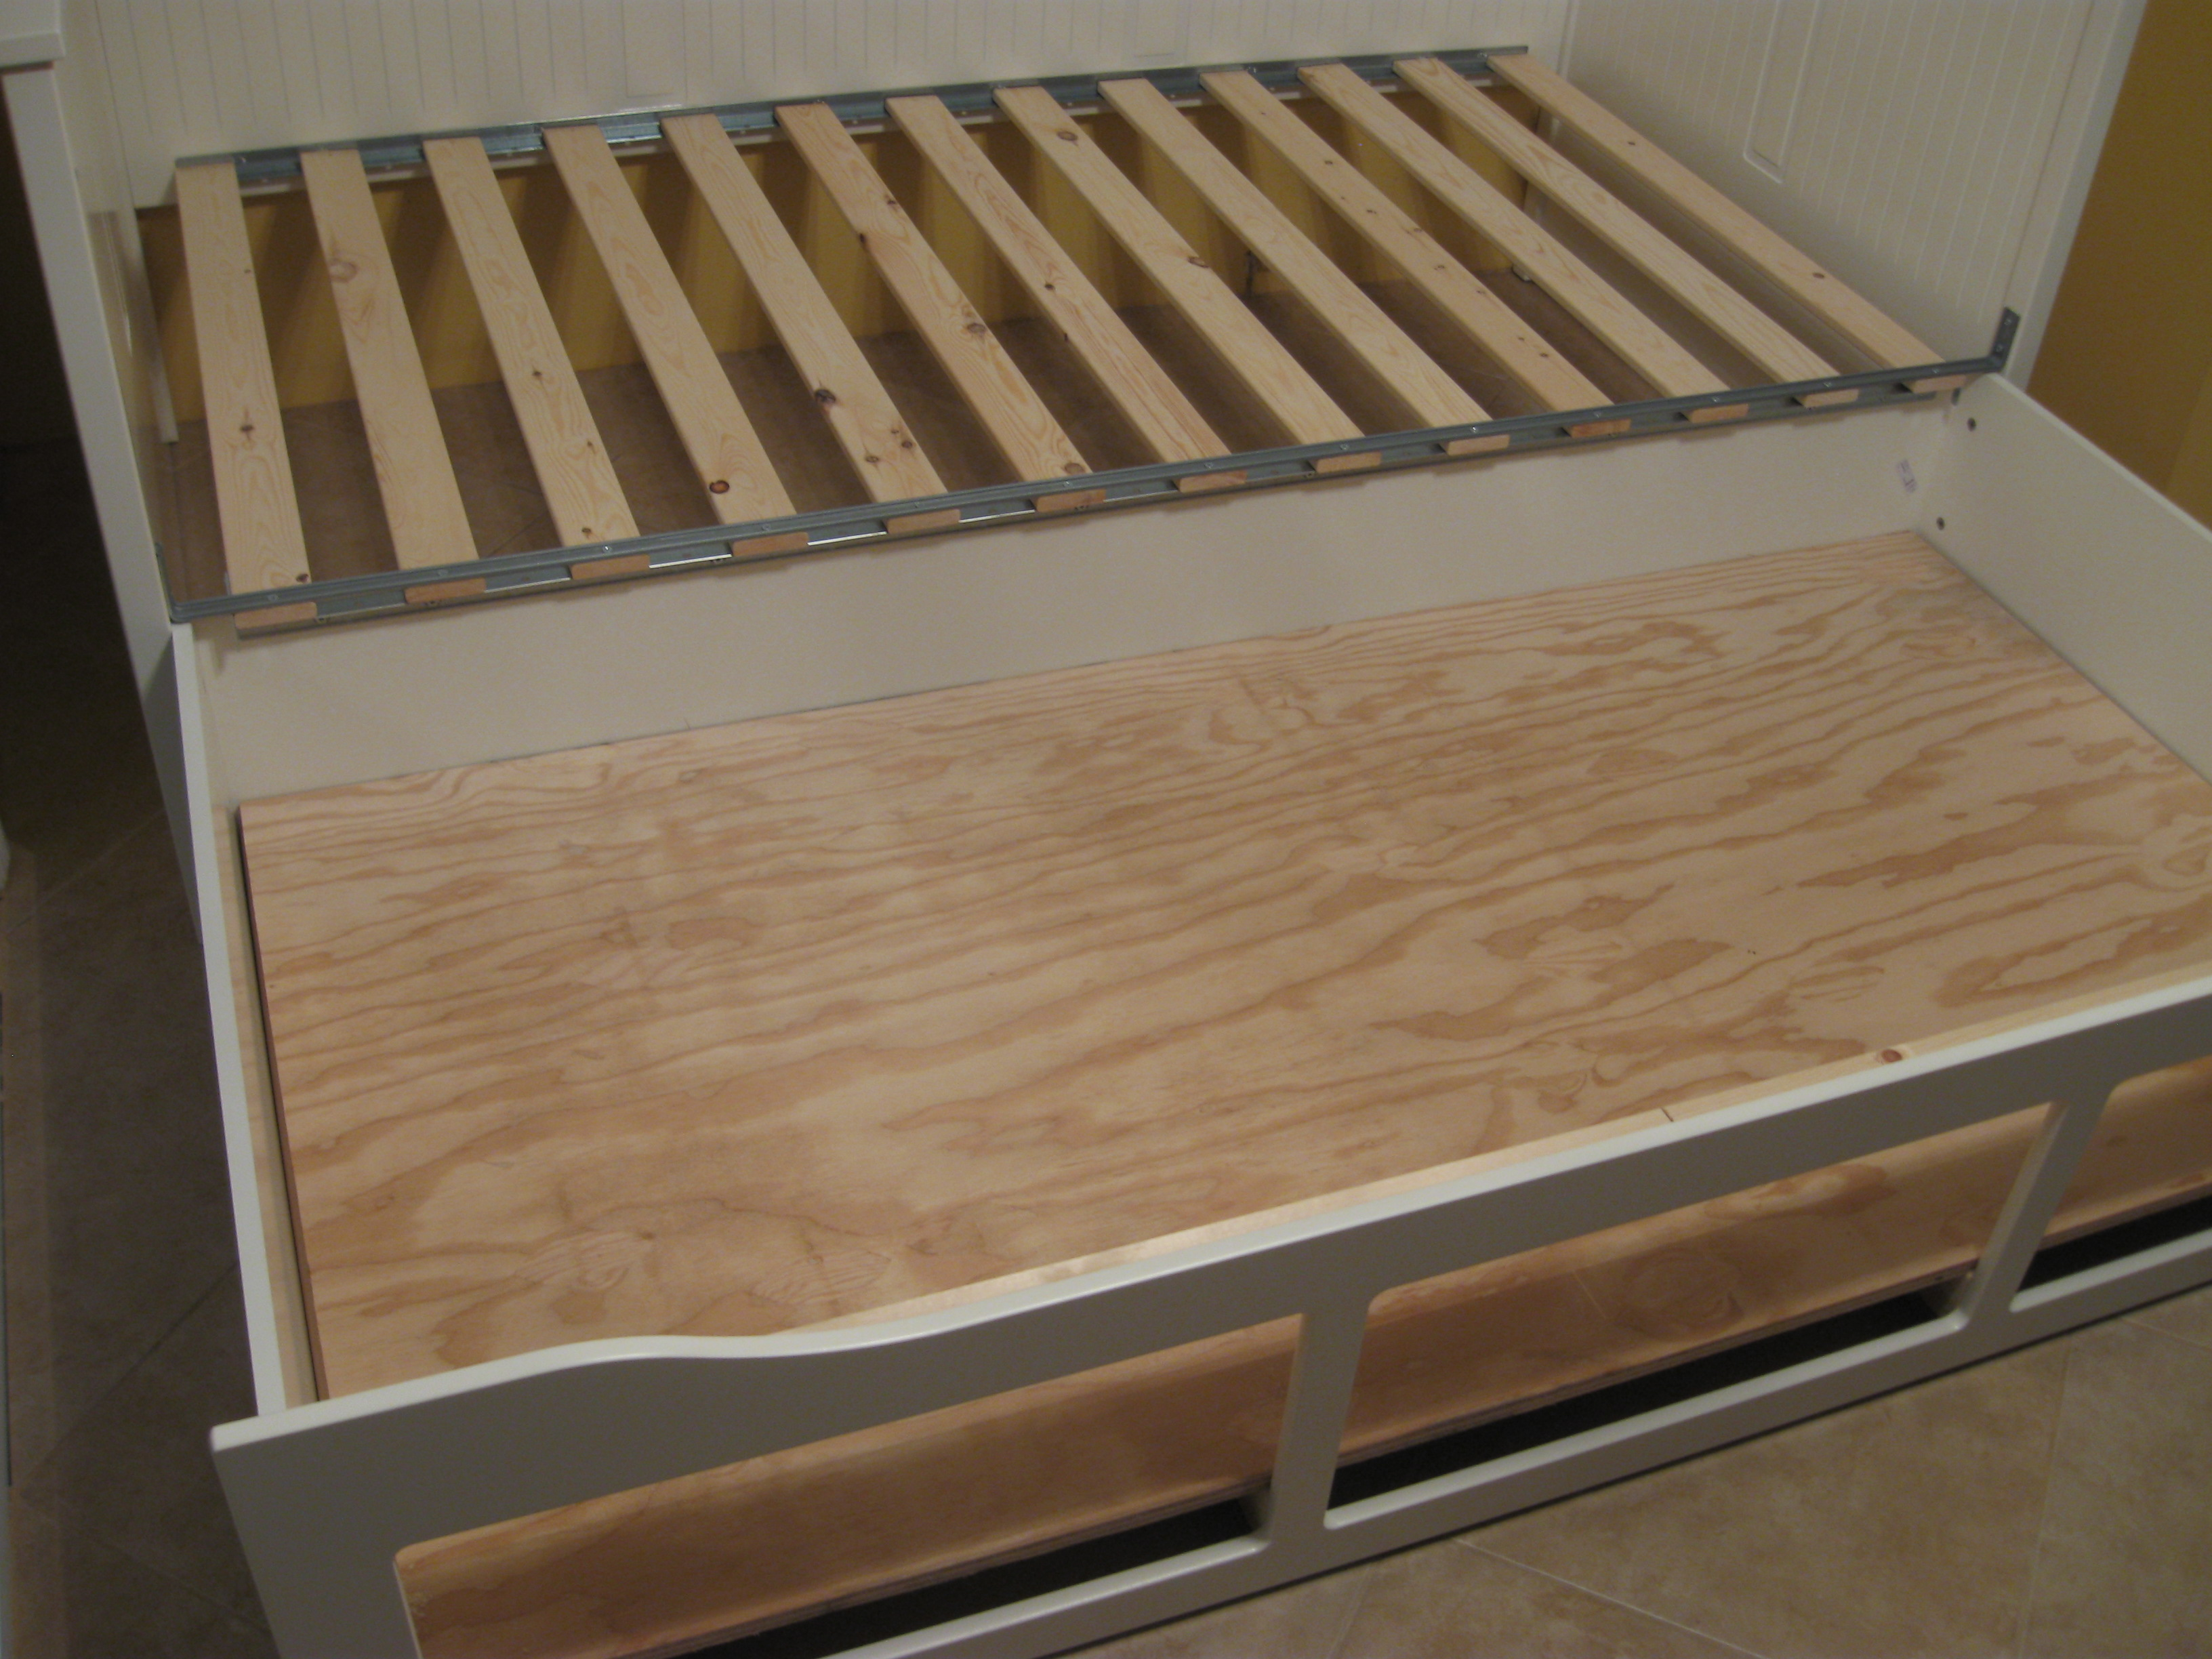 Ikea day beds hemnes home design ideas - Dog Bed 023